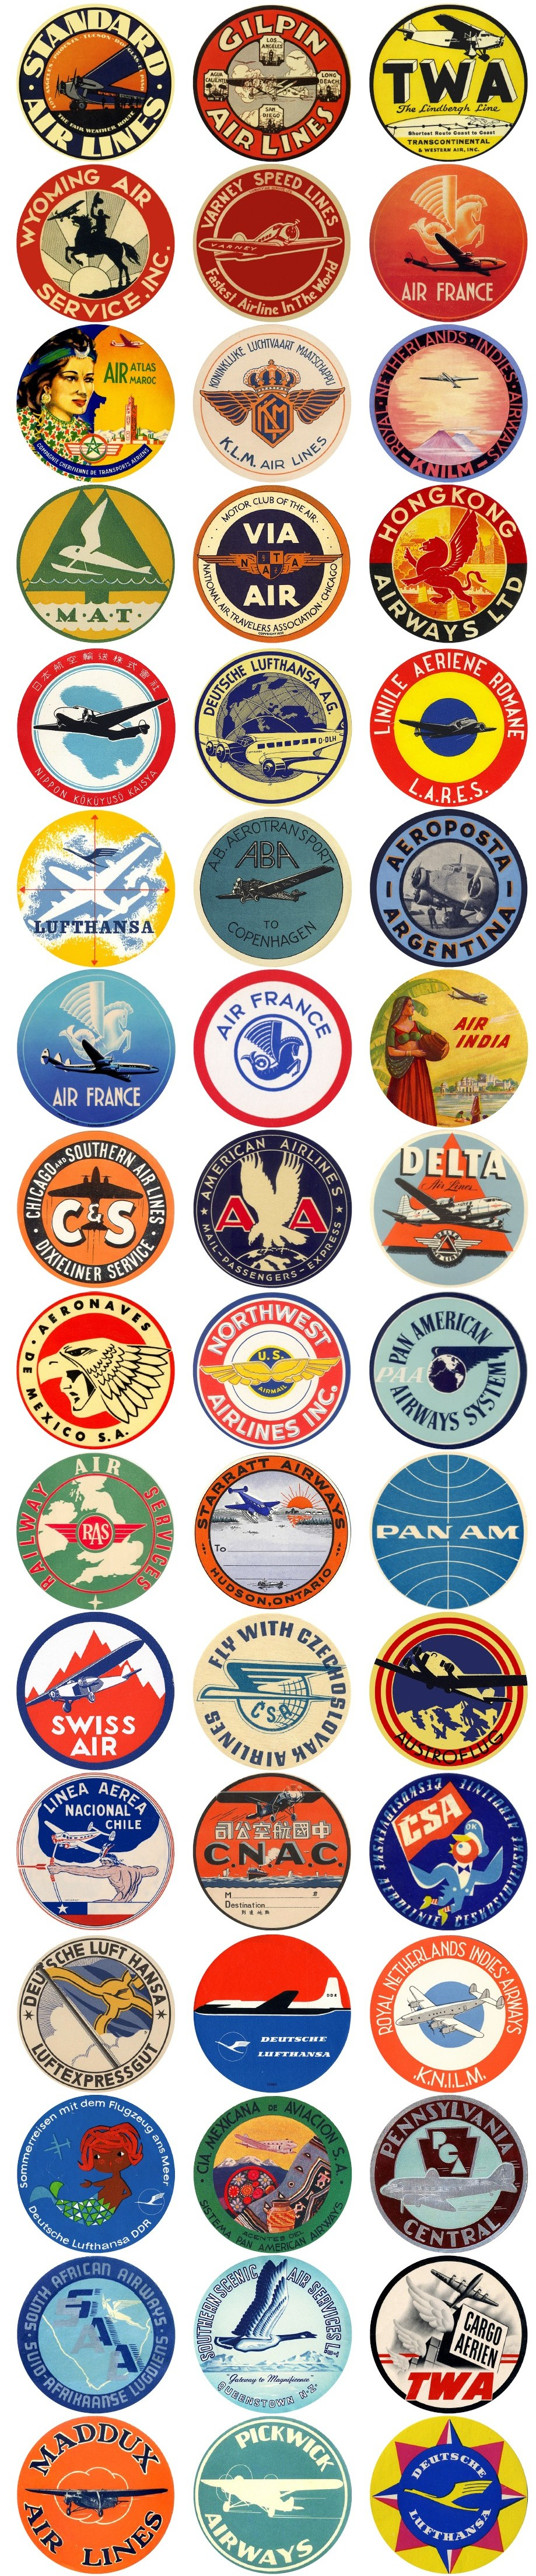 A mix of air transport and airlines vintage travel labels